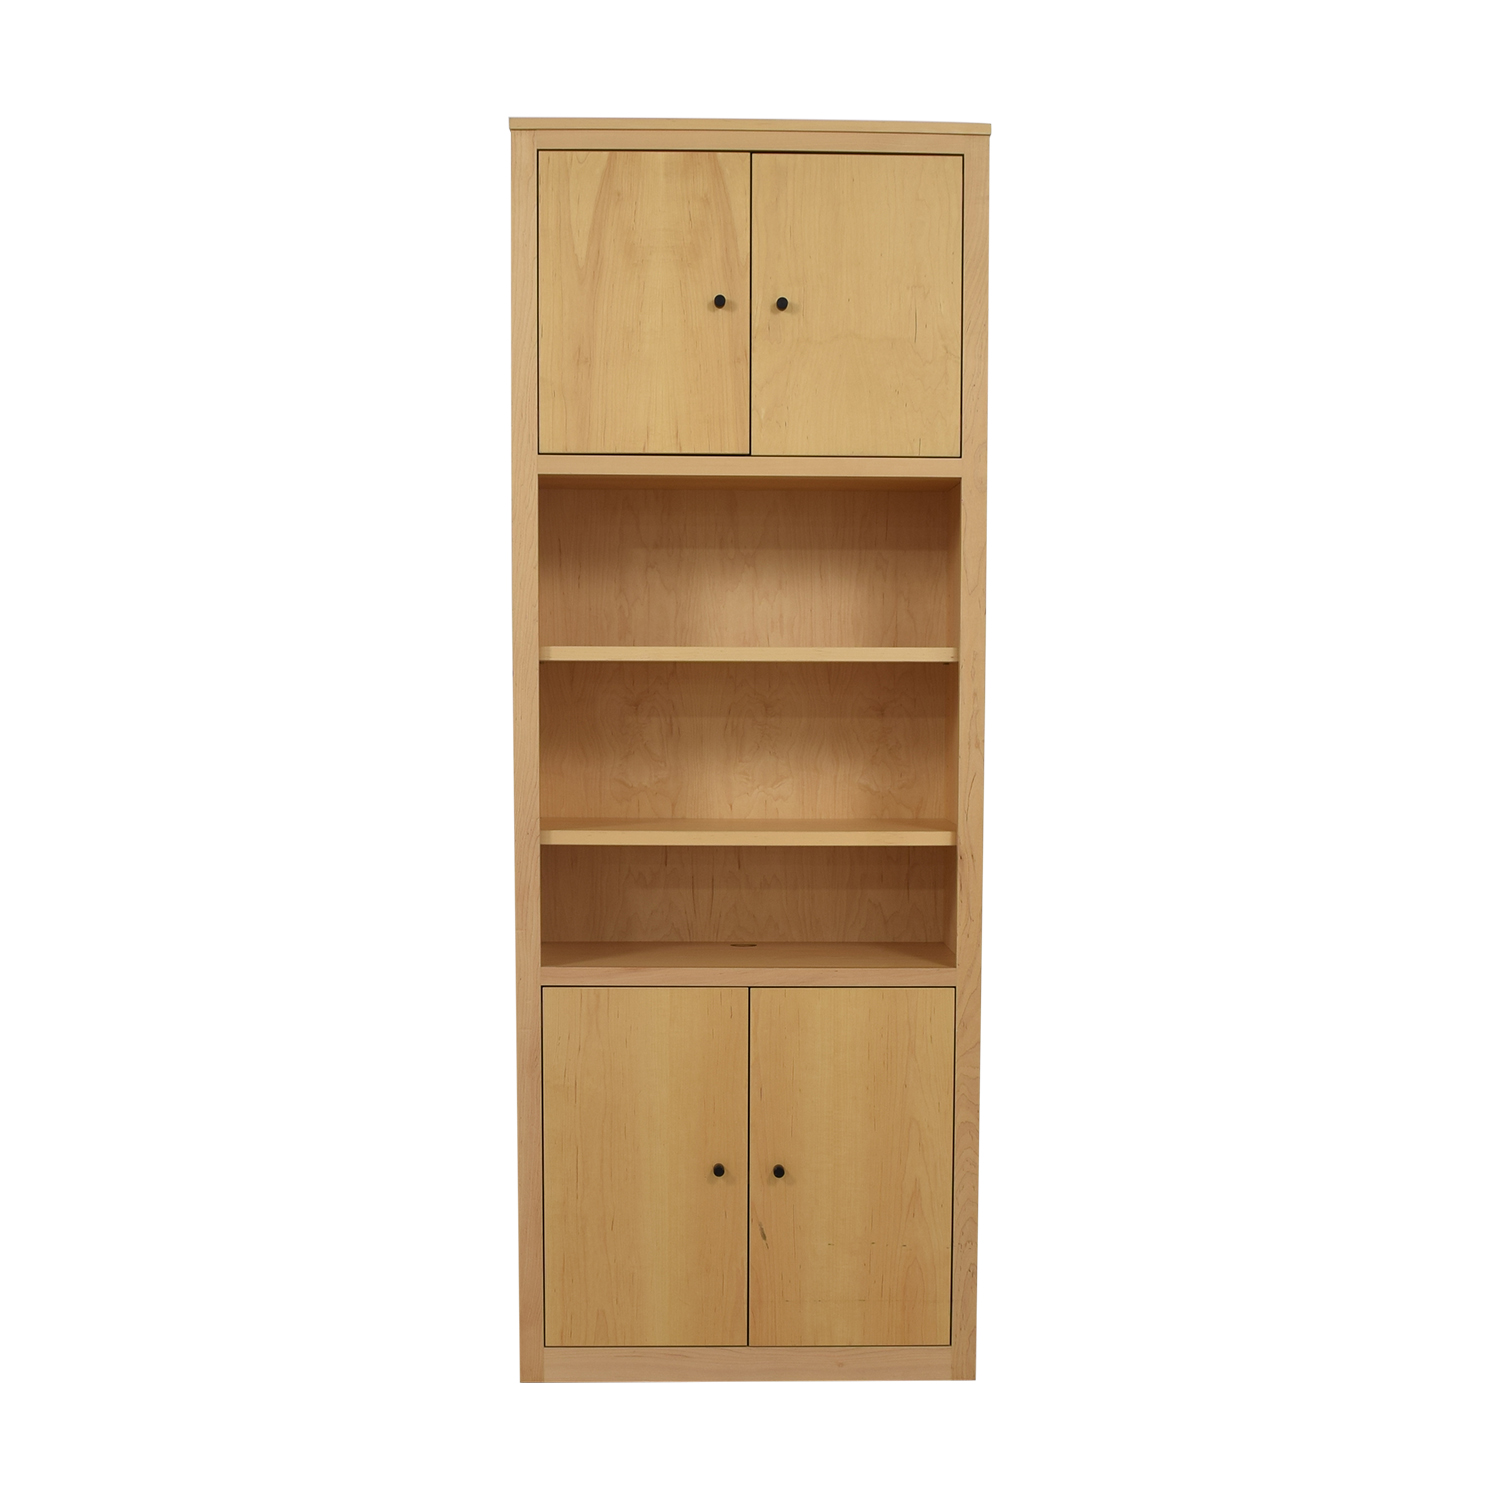 Room & Board Room & Board Woodwind Bookcase with Doors dimensions